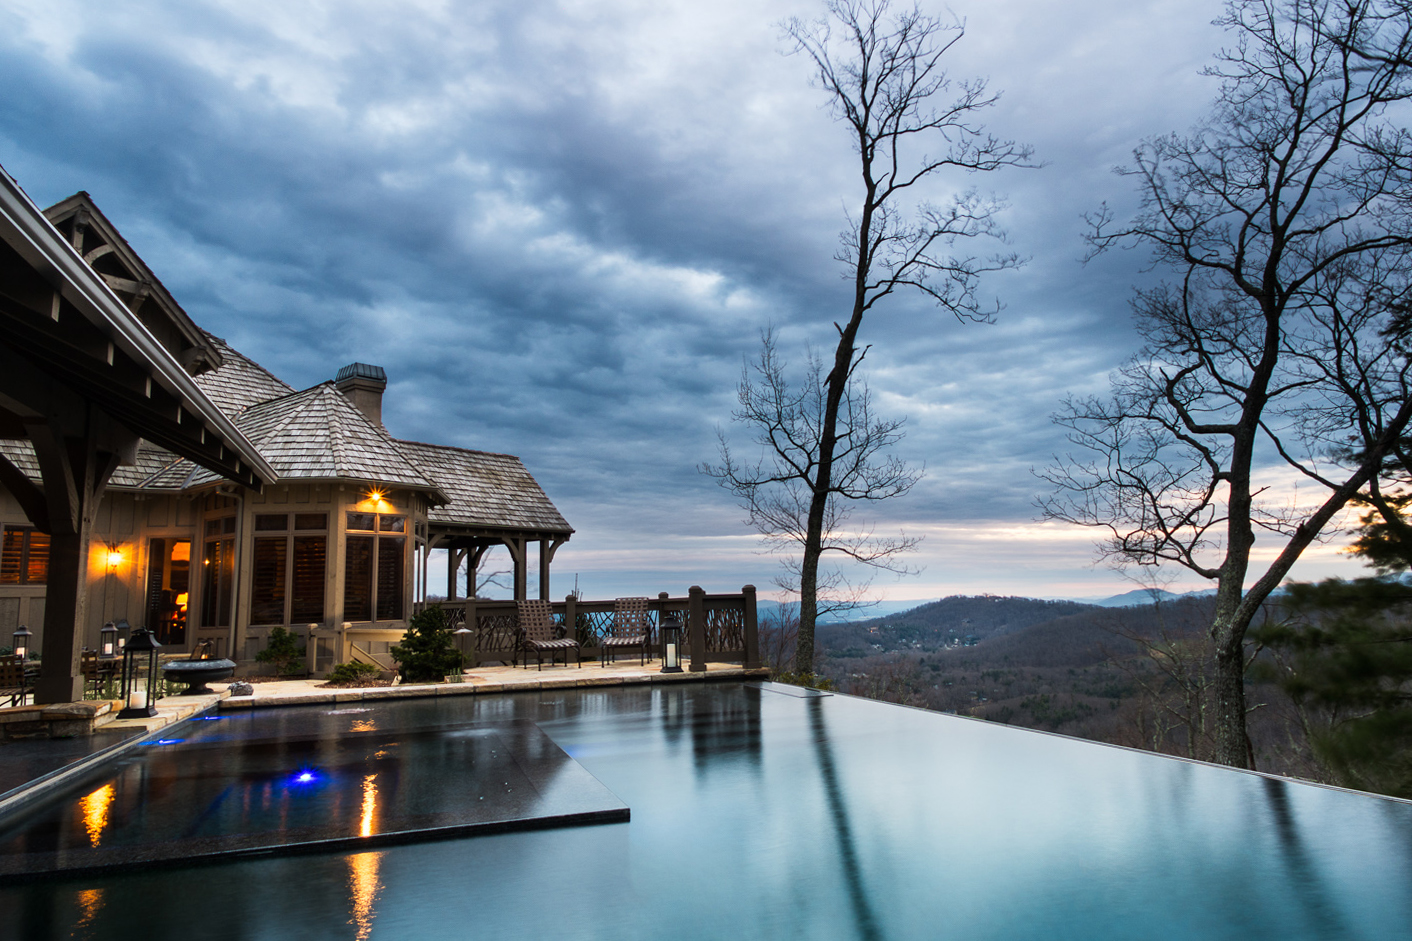 HGTV's Cool Pools — Perry Smyre — Architectural & Interior ...